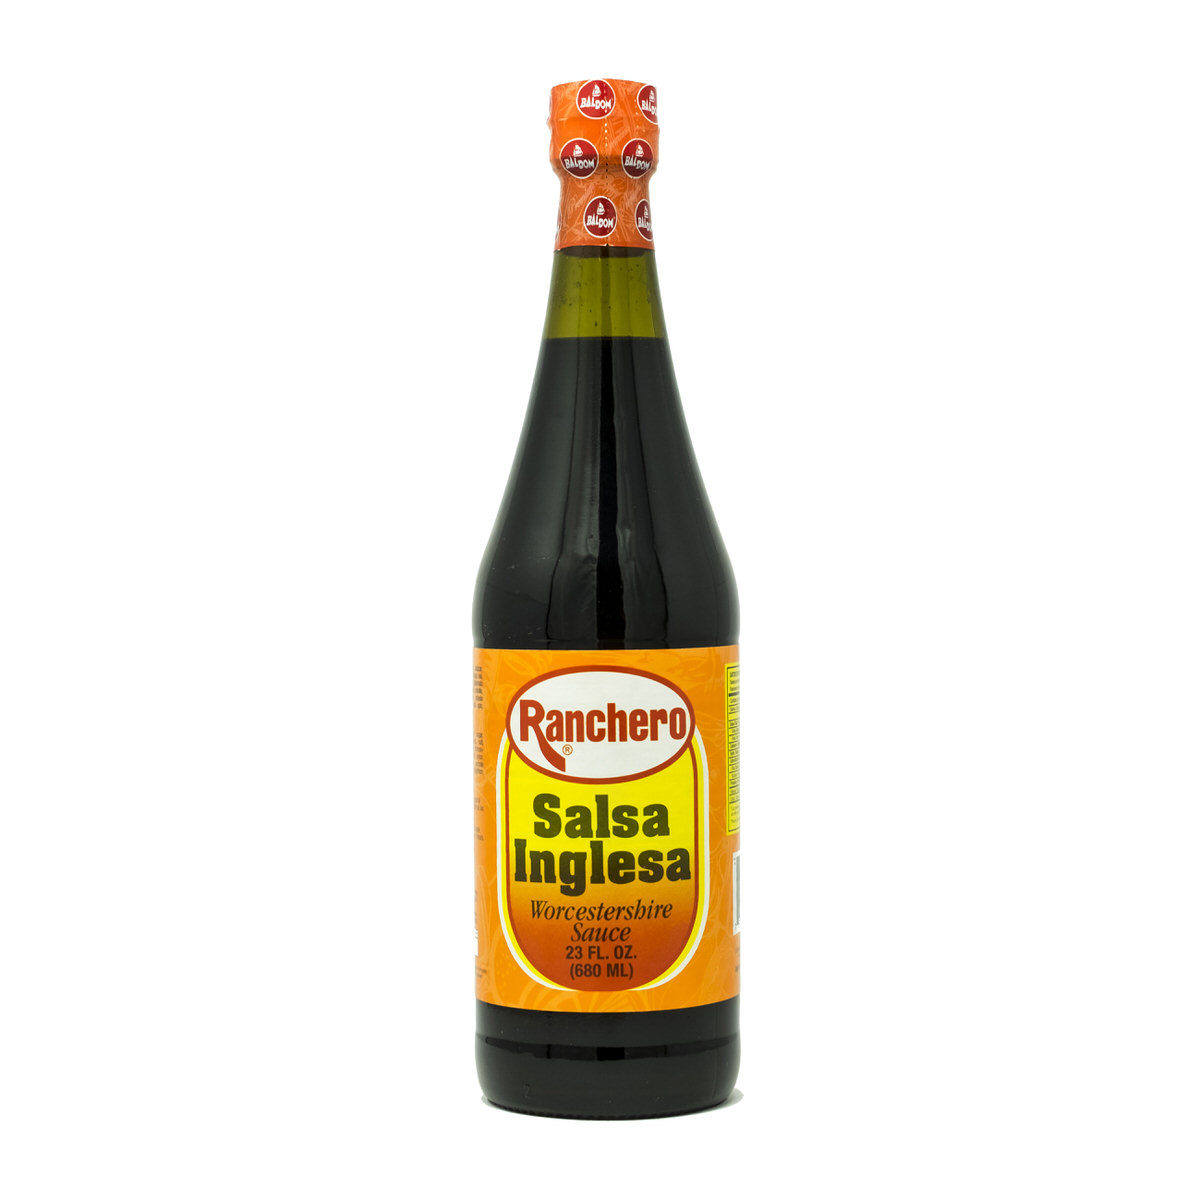 Salsa Inglesa Ranchero 680ml